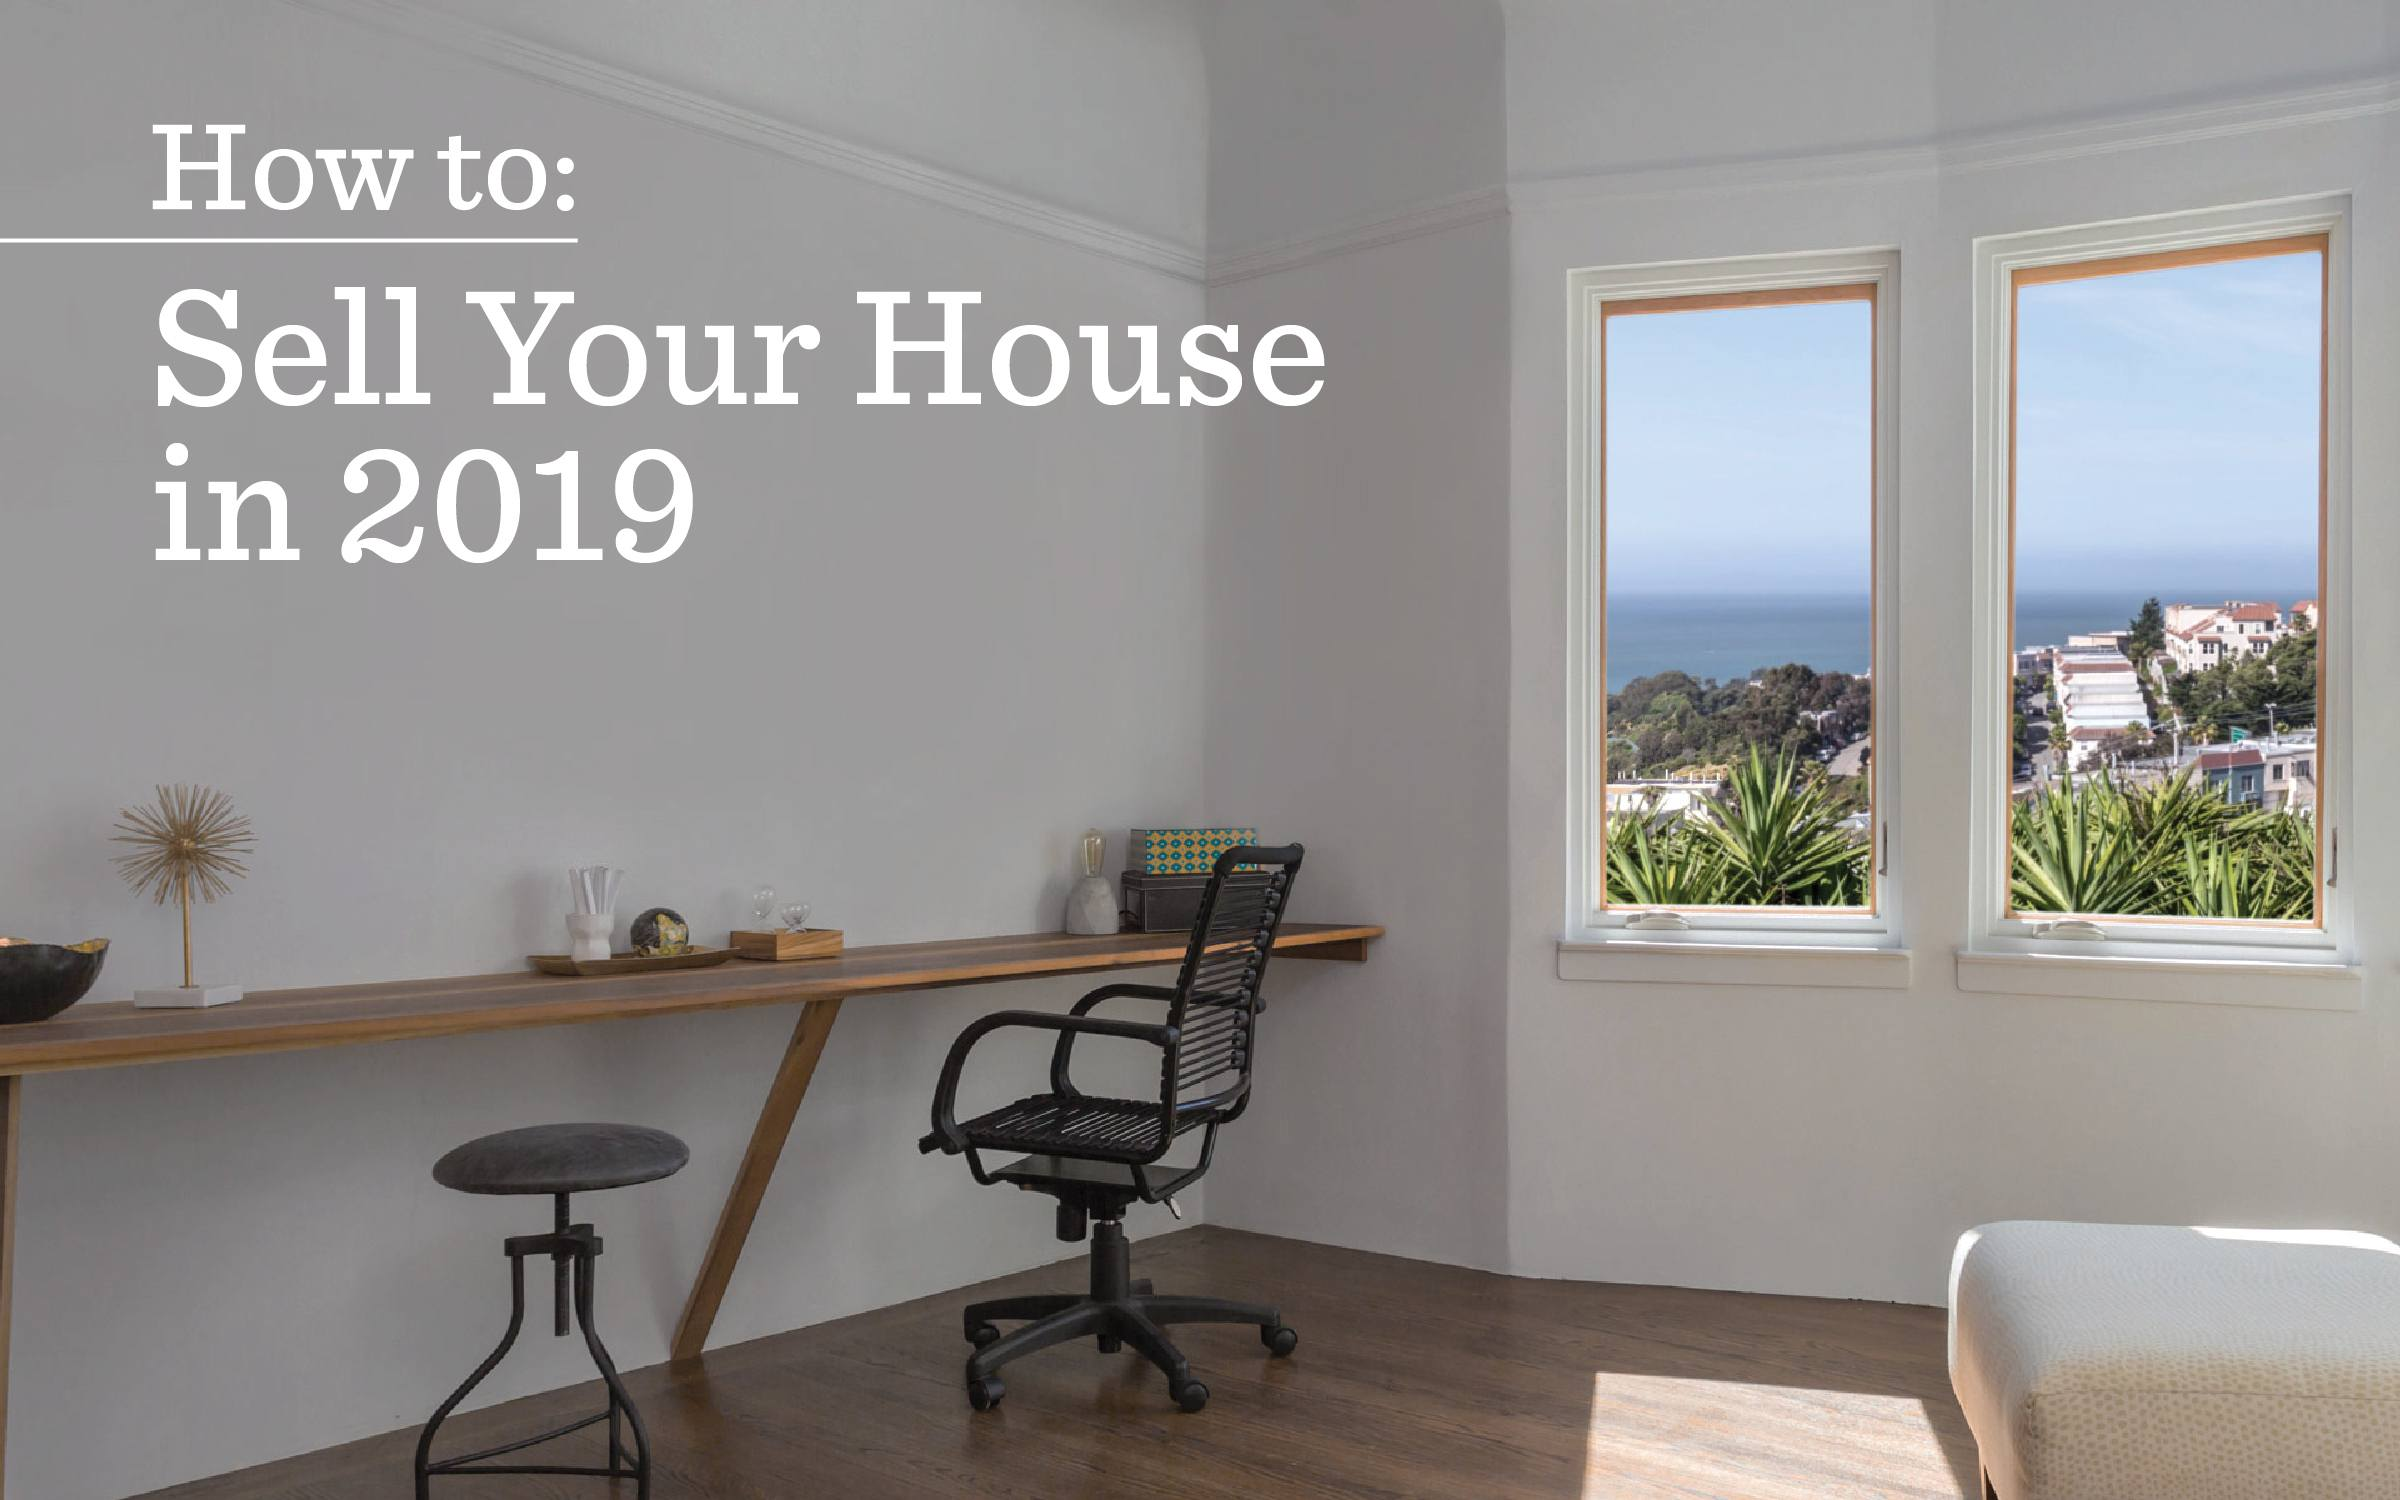 Sell your home in 2019